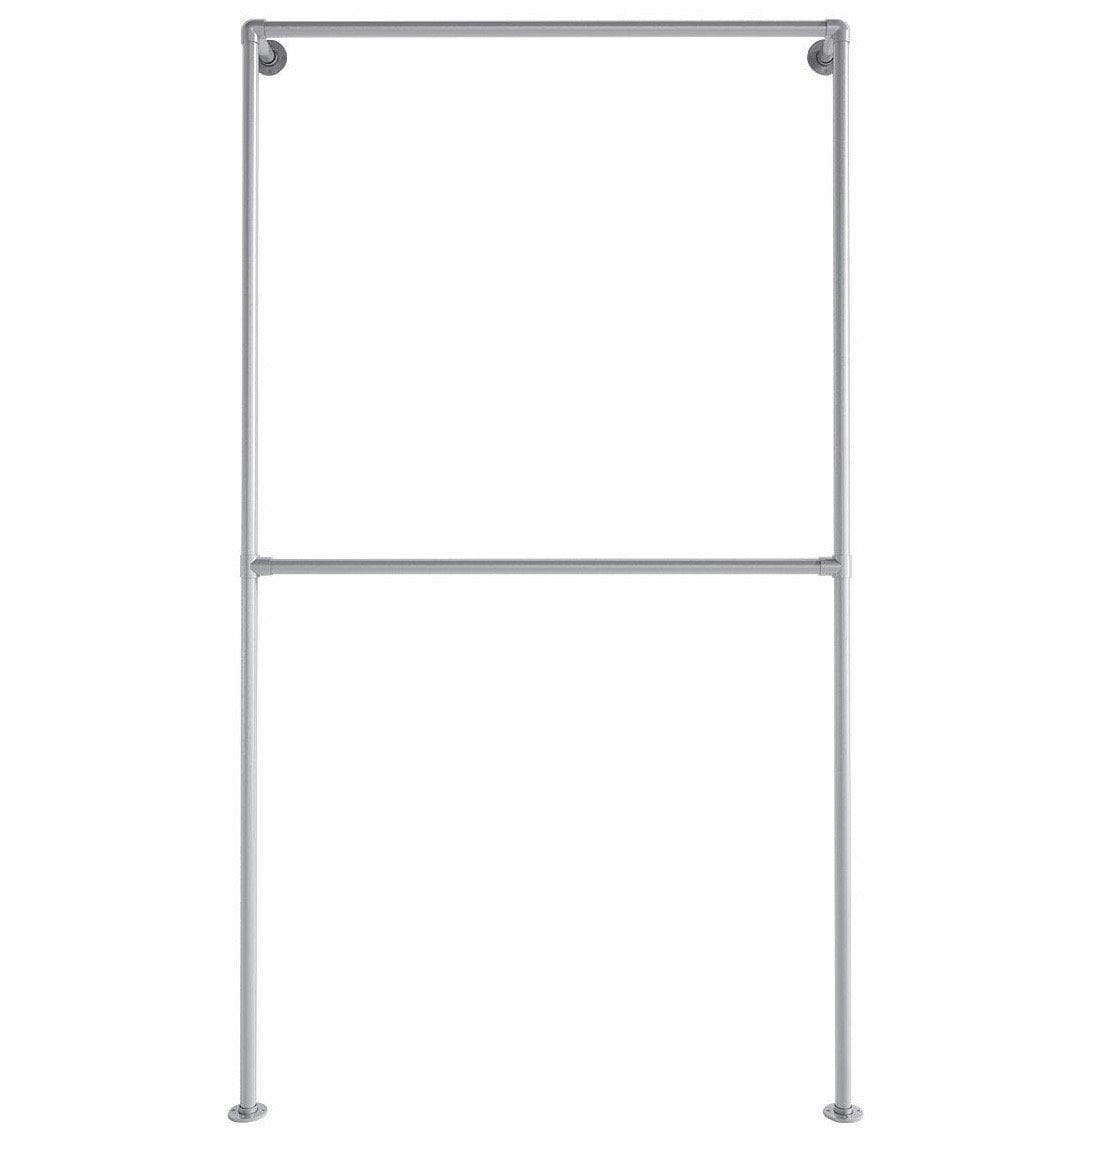 Ziito Clothes Rail E1dr / 100 cm Double Wall Tøjstativ